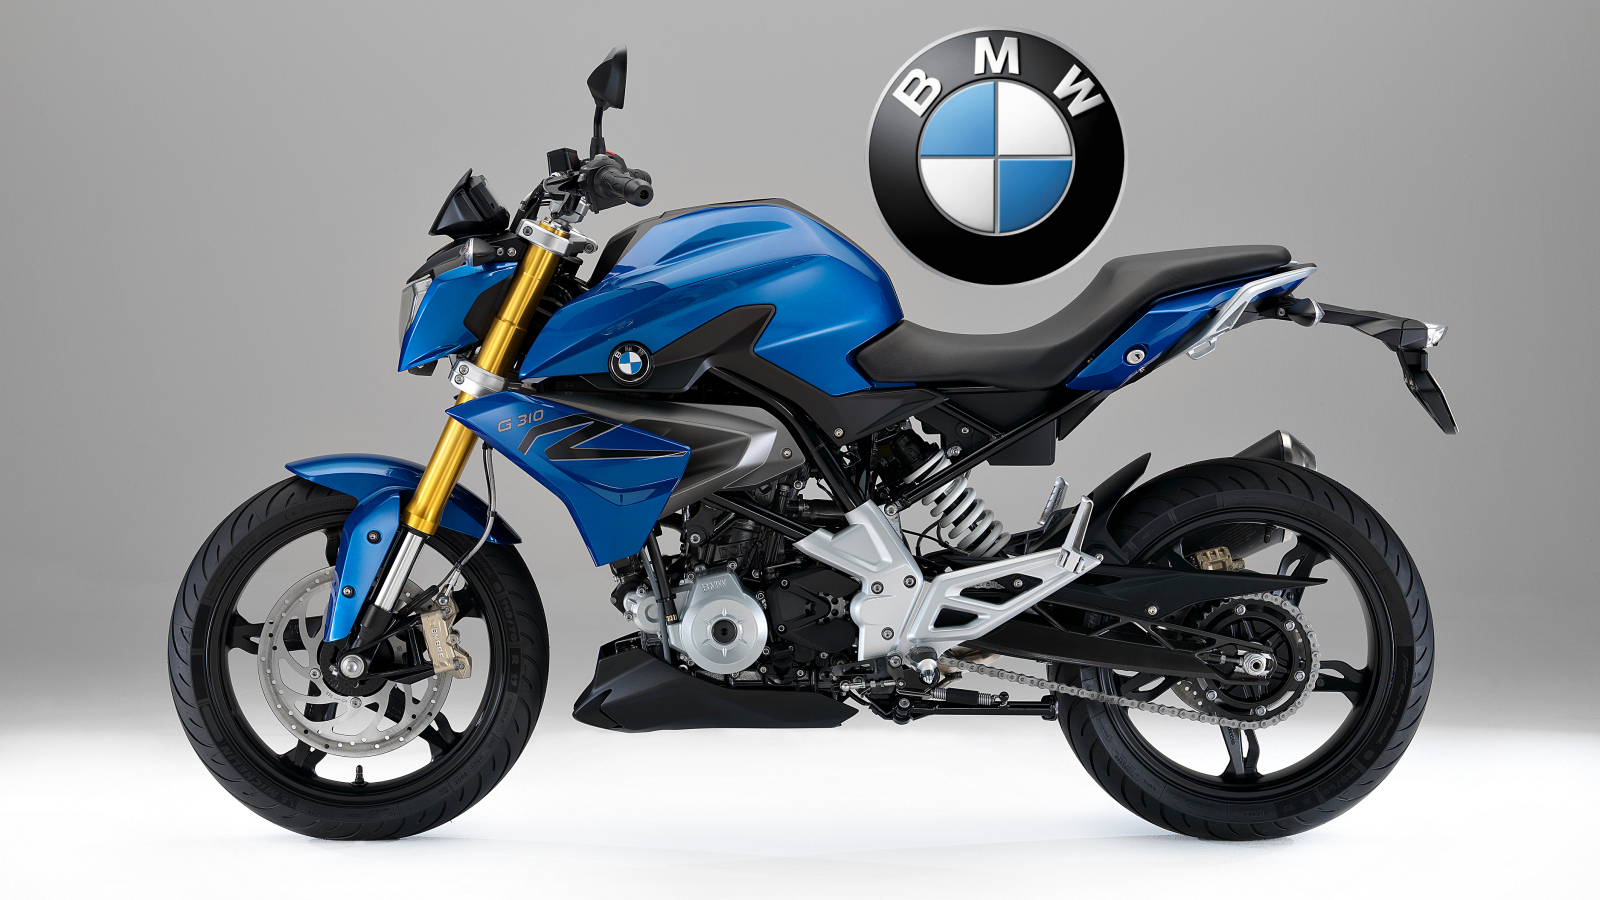 2016 bmw g 310 r gallery 684736 top speed. Black Bedroom Furniture Sets. Home Design Ideas